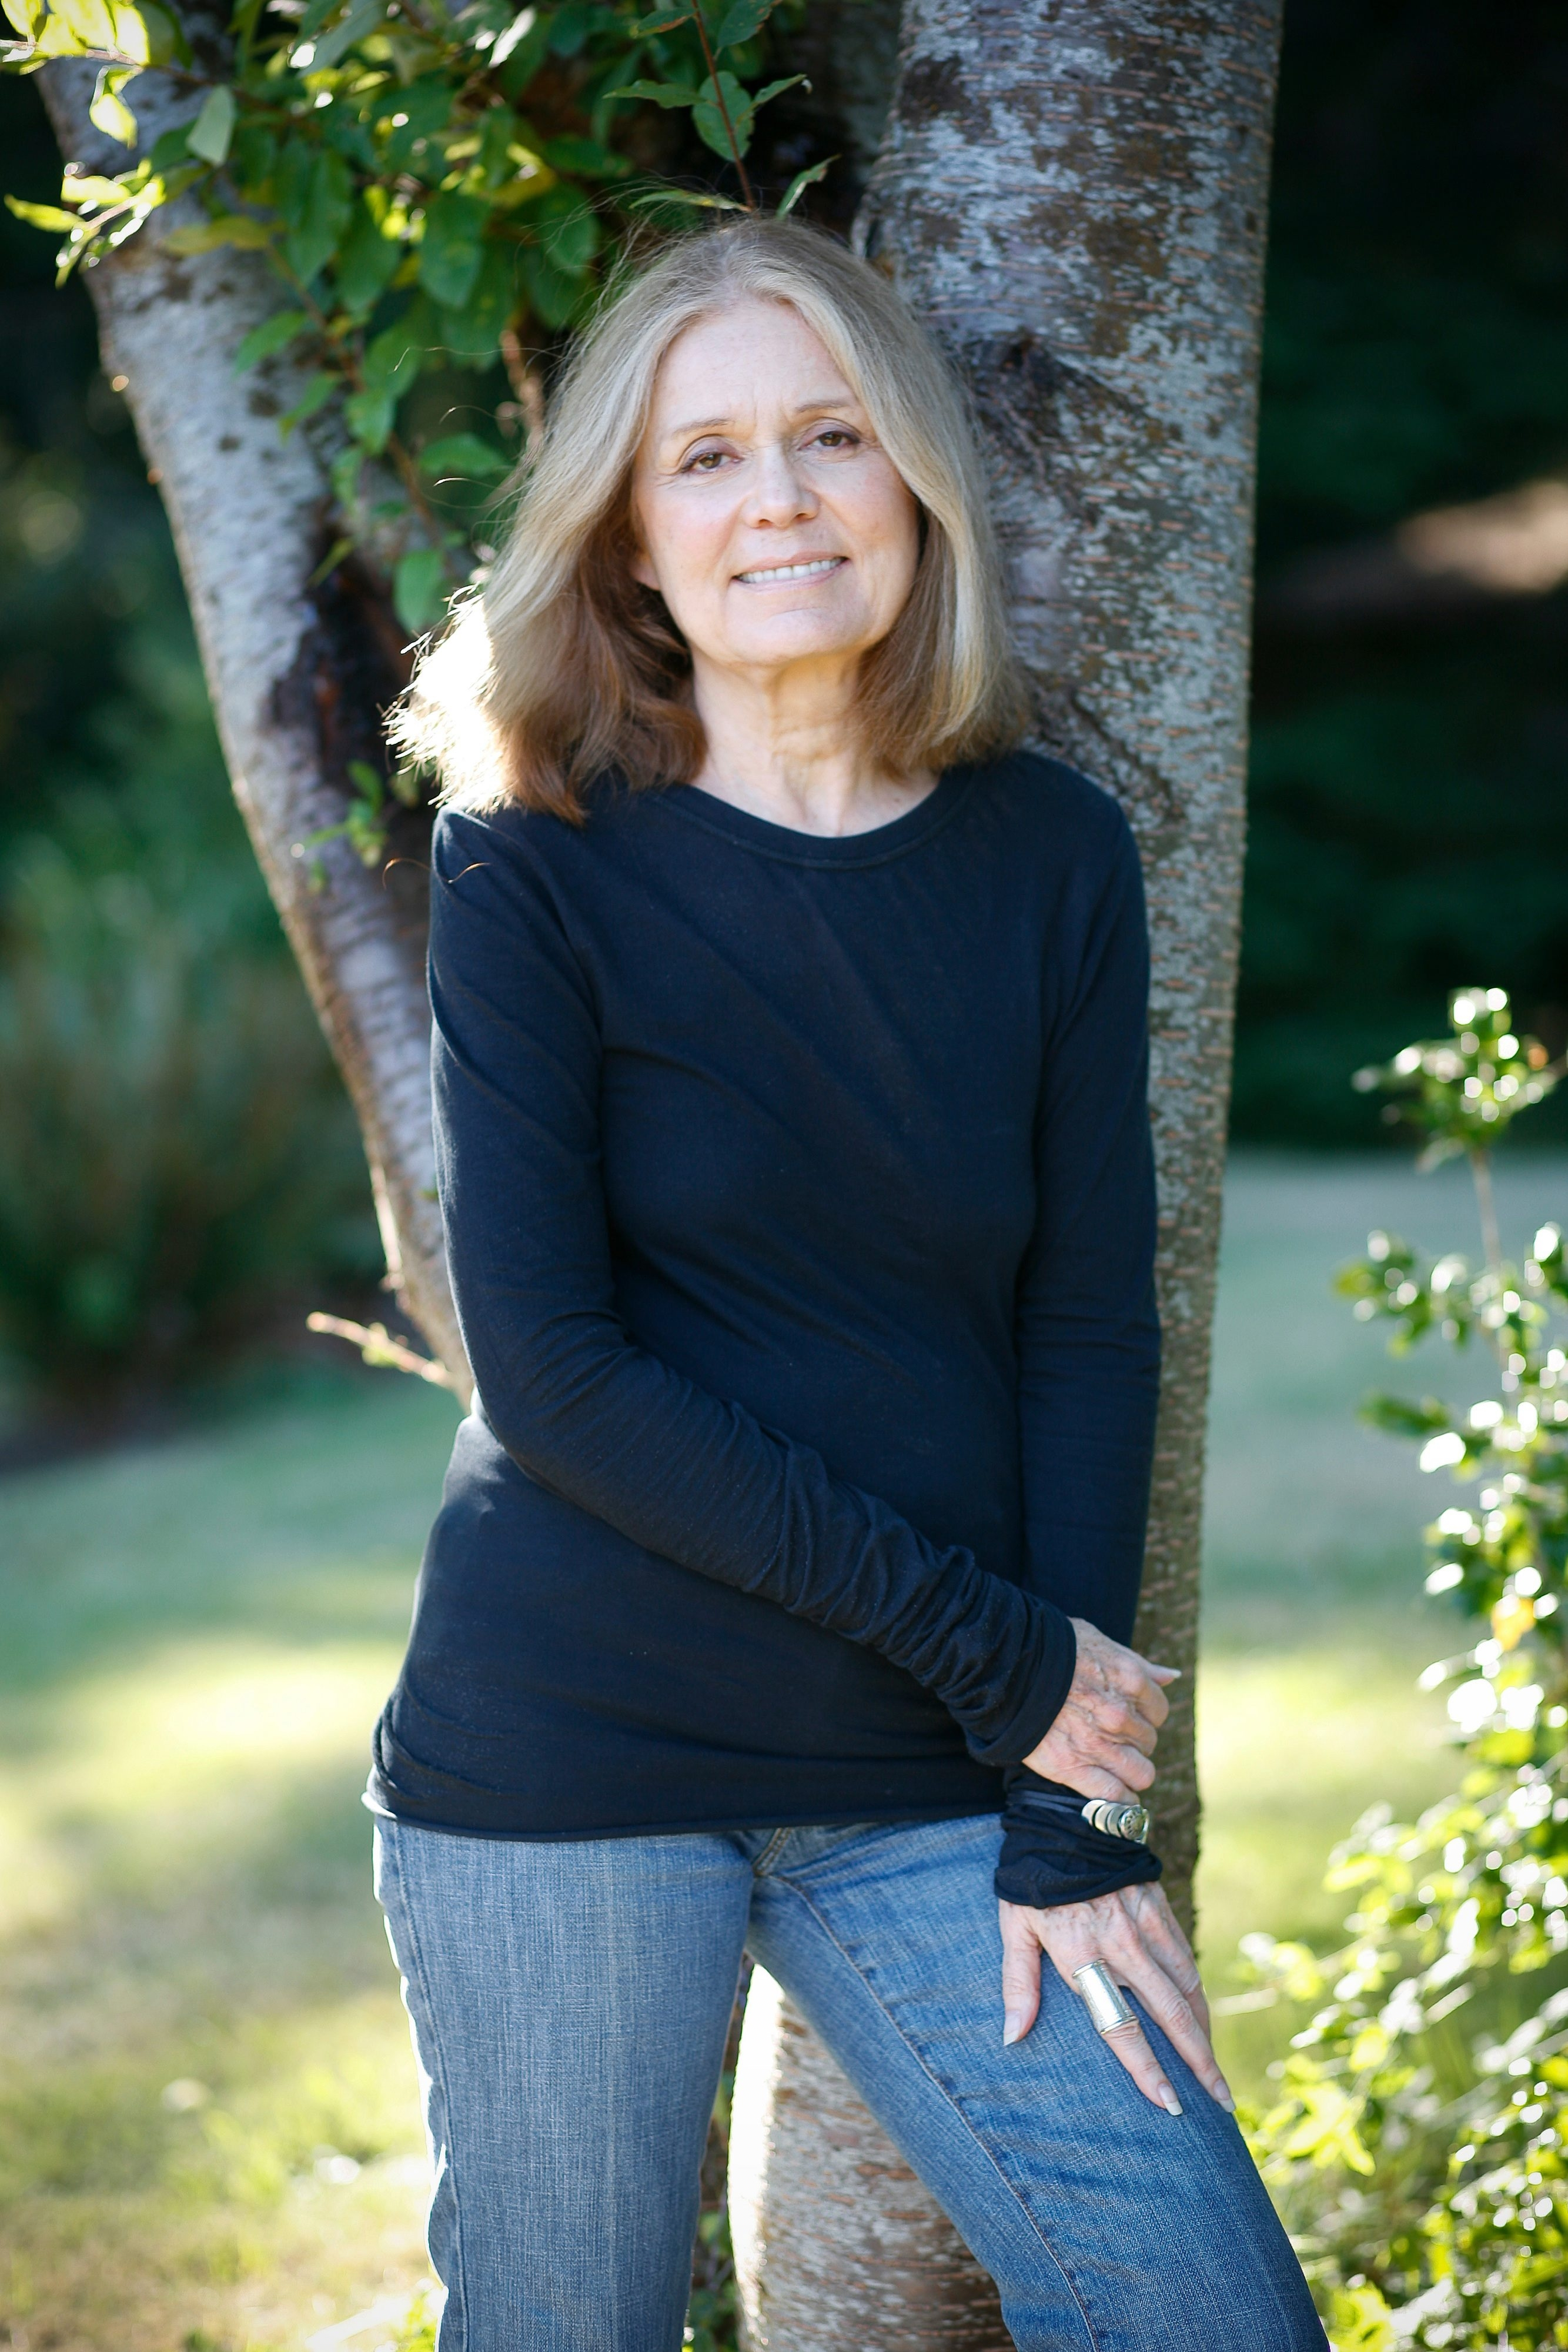 Gloria Steinem will address a Planned Parenthood celebration in Buffalo Wednesday before speaking at the UB Center for the Arts at 8 p.m.